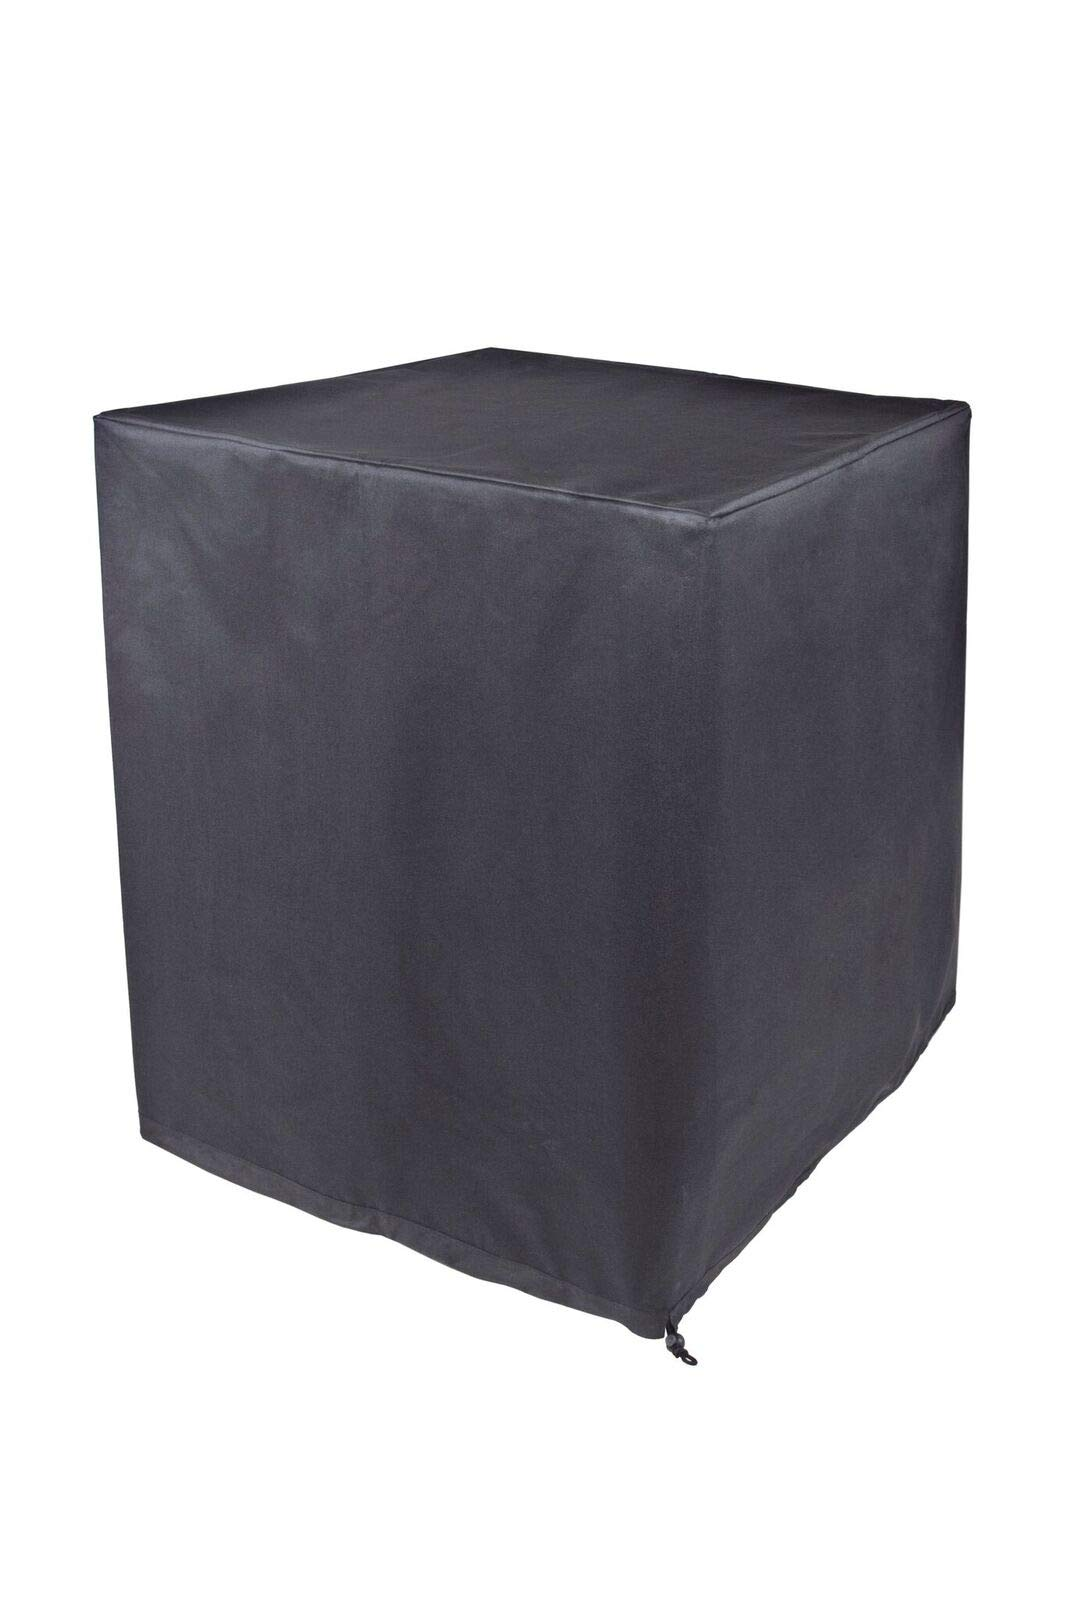 Sturdy Covers AC Defender - Full Winter AC Cover Outdoor Protection by STURDY COVERS EST. 2015